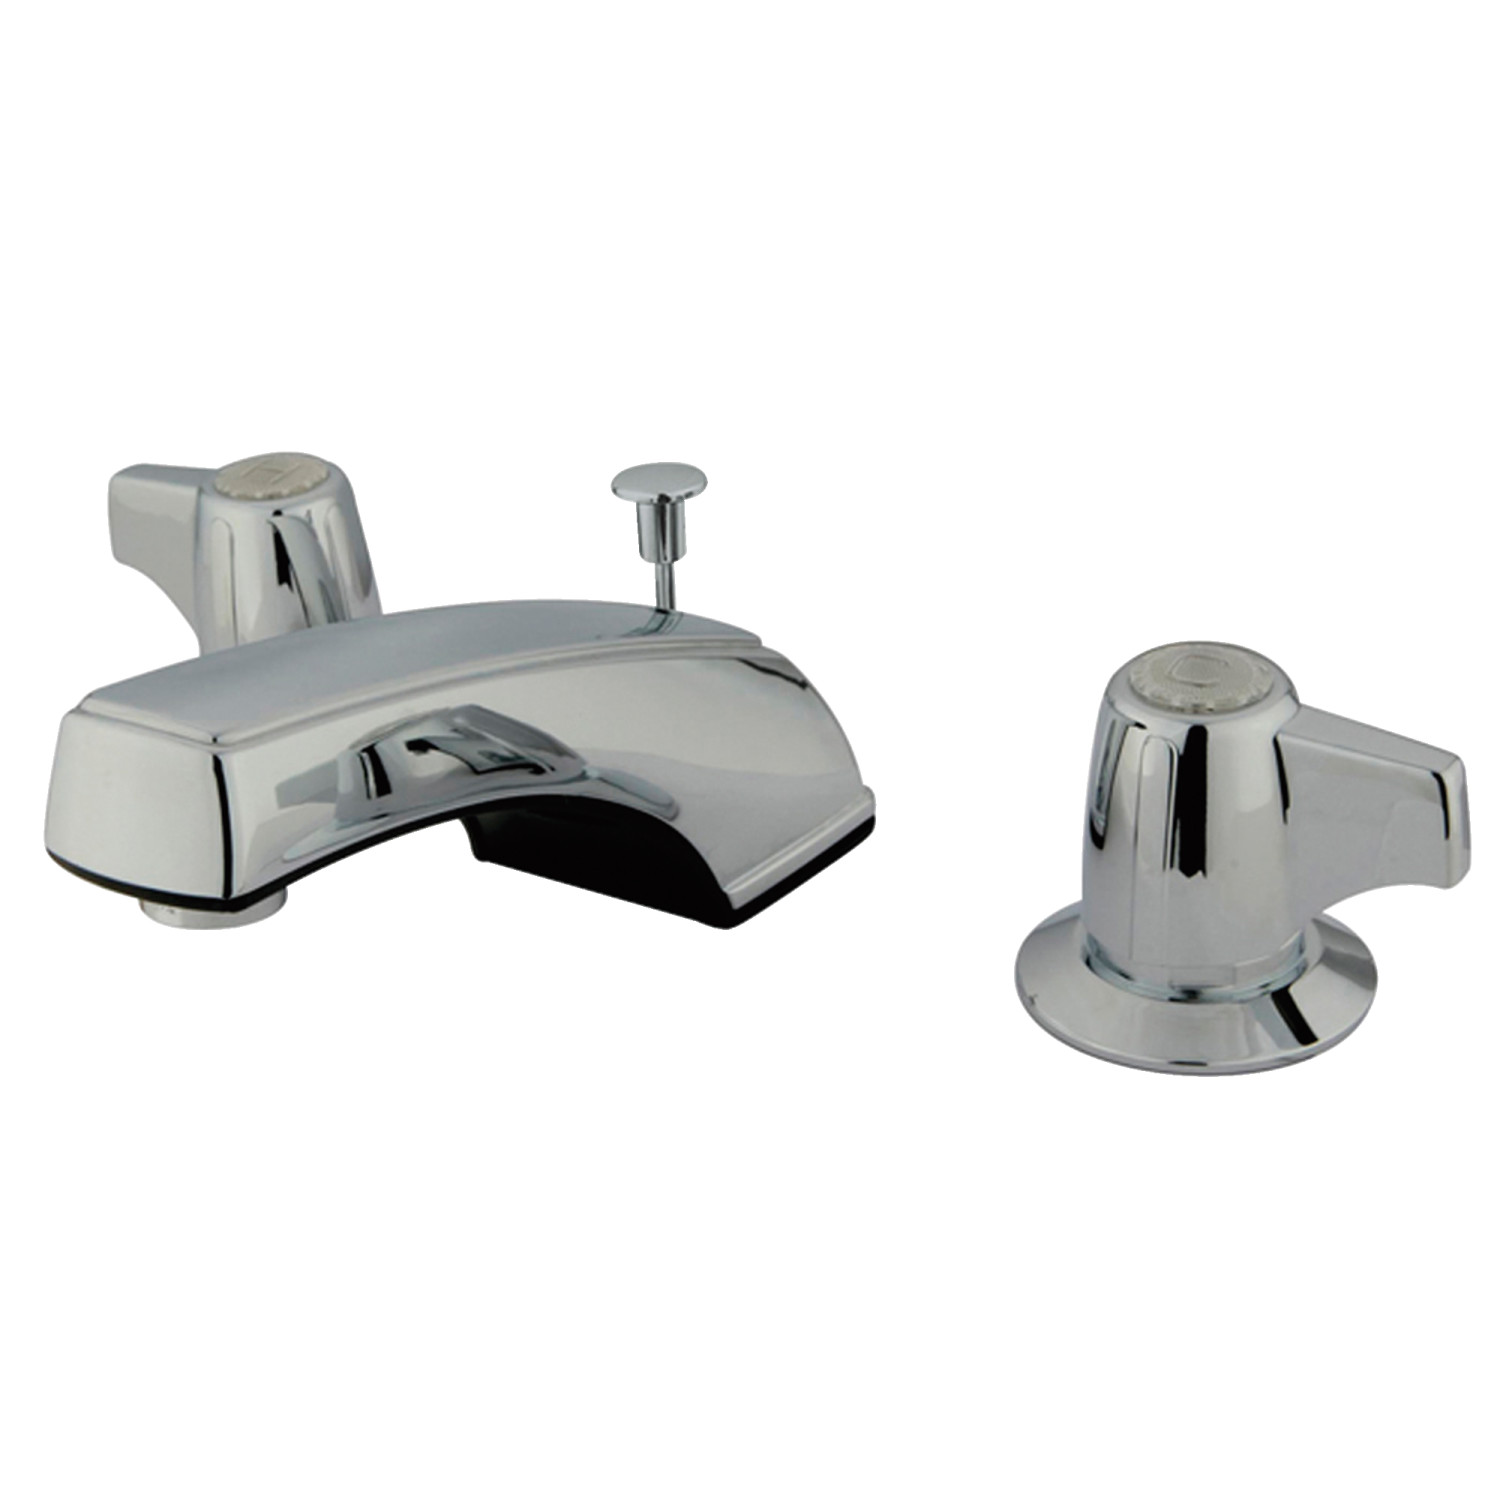 Traditional 2-Handle 3-Hole Deck Mounted Widespread Bathroom Faucet with Plastic Pop-Up in Polished Chrome Color